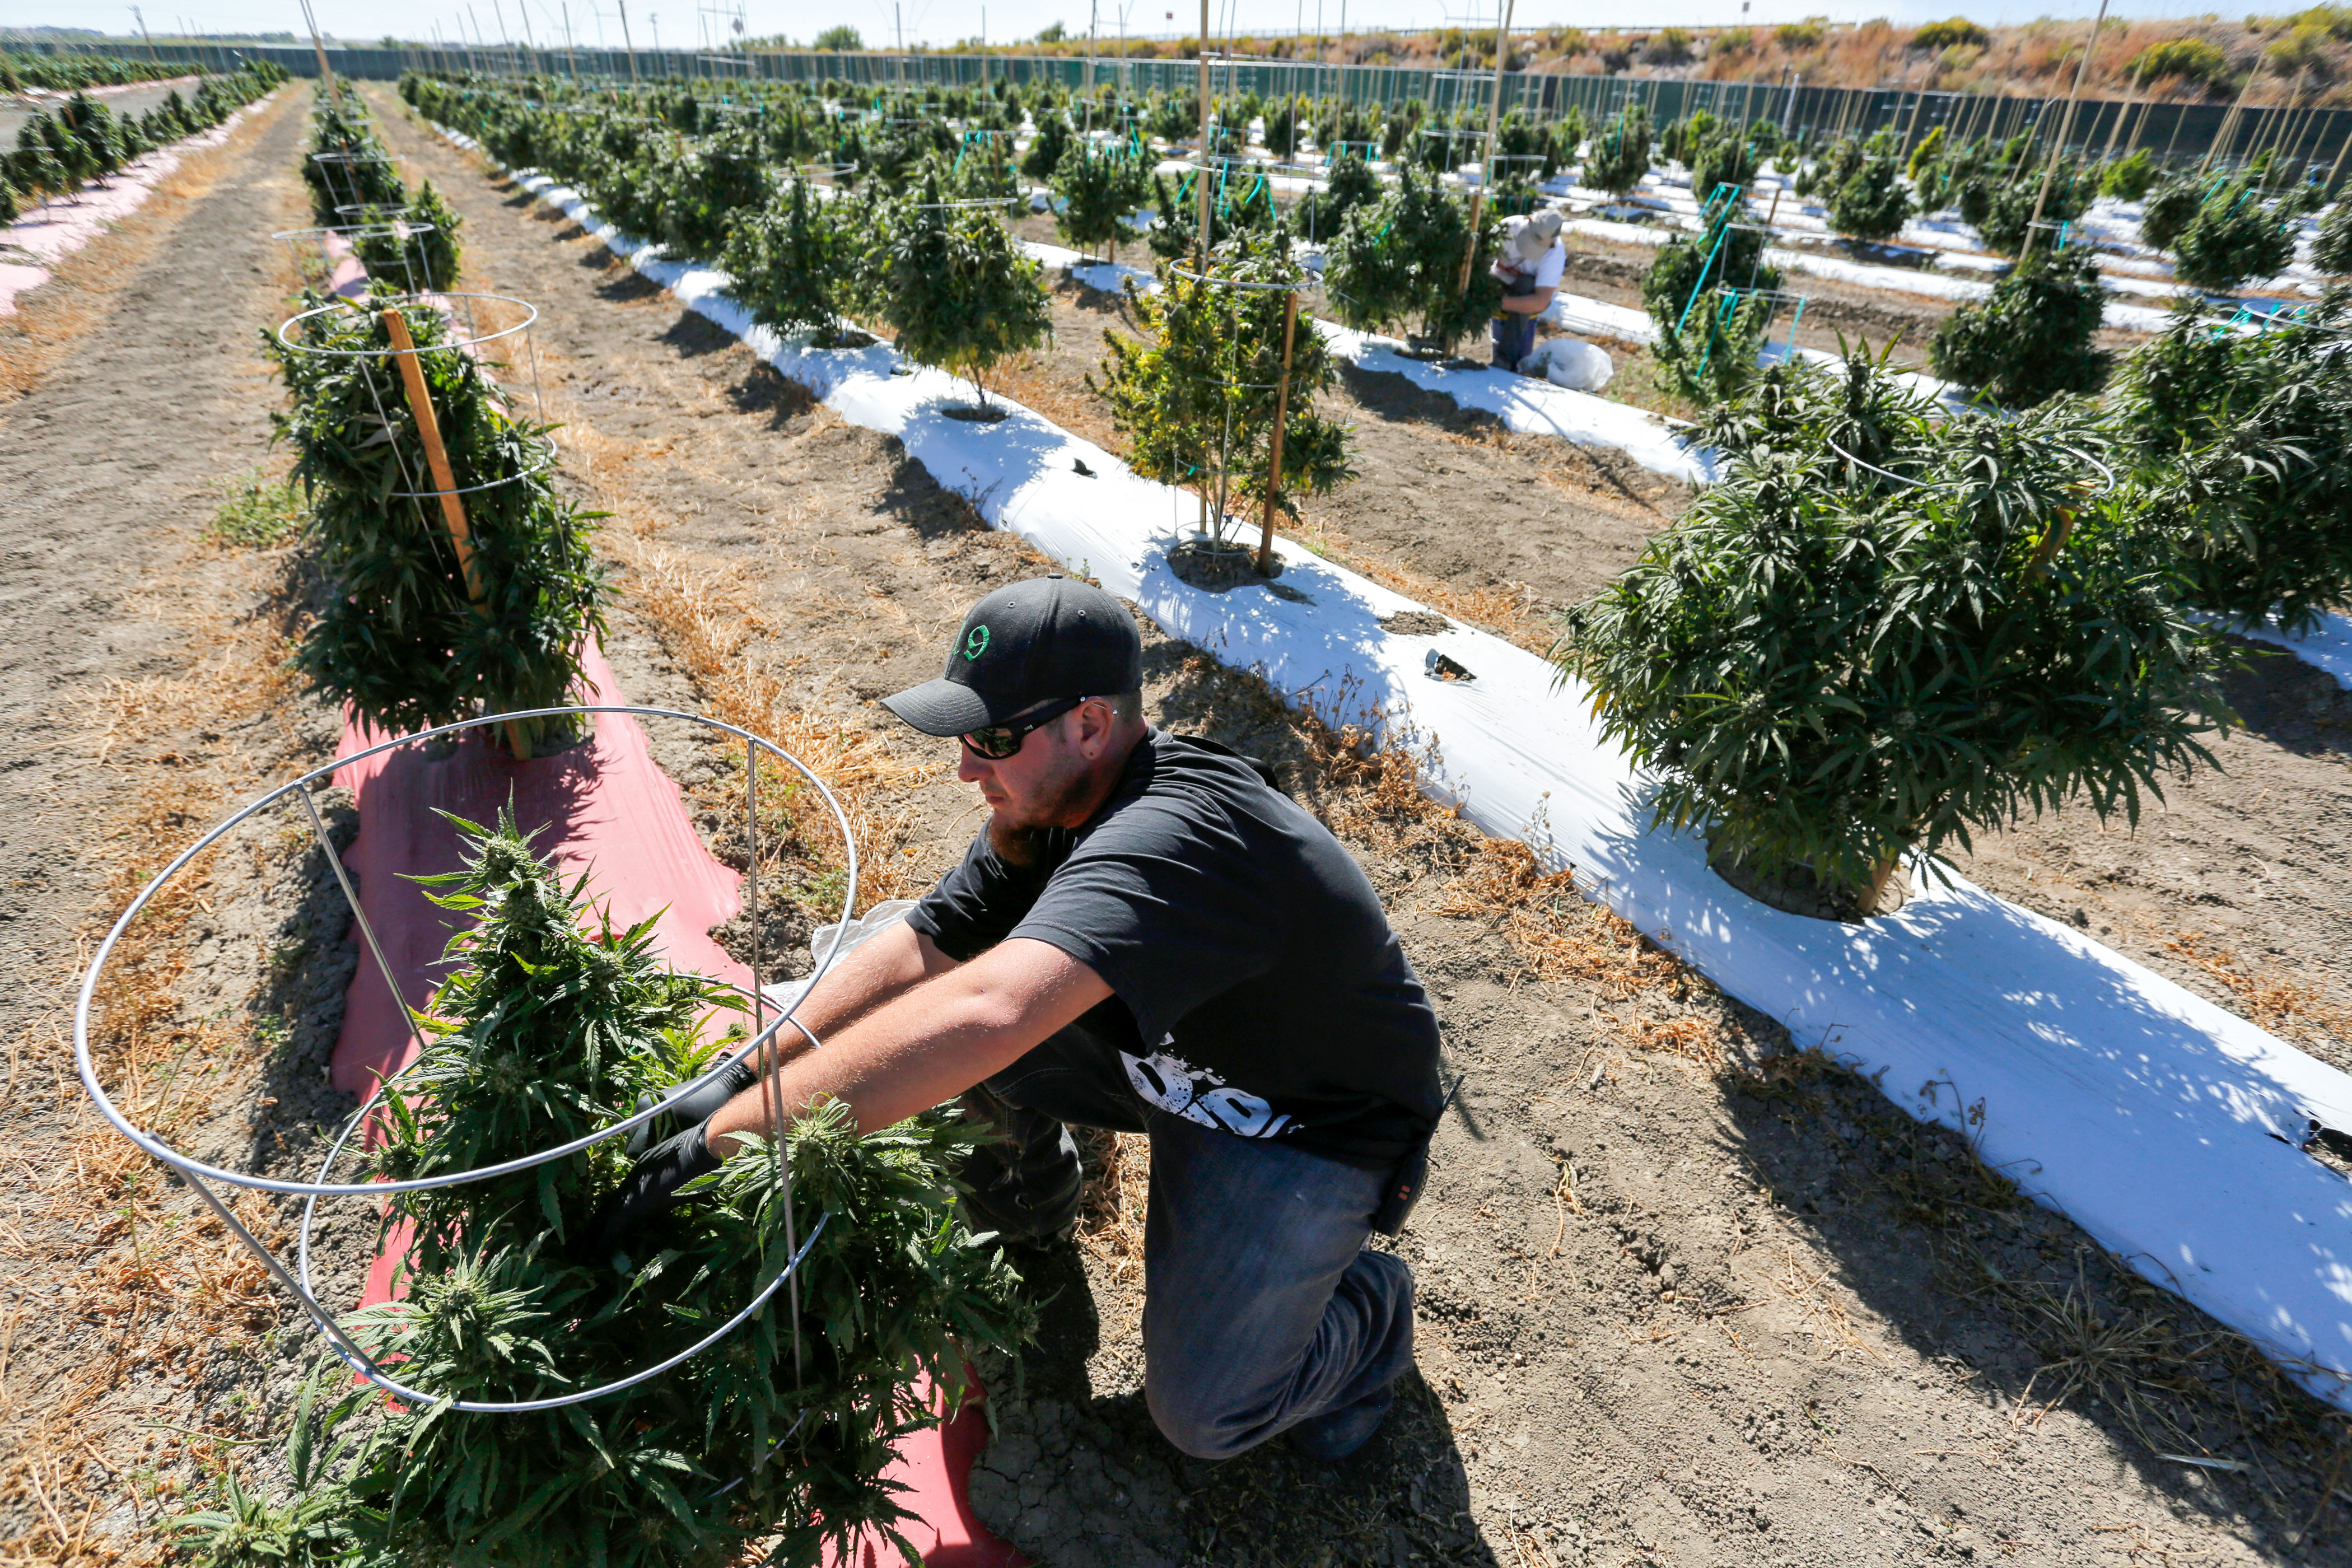 <p>A farmworker tends to soon-to-be-harvested marijuana plants, at Los Suenos Farms in Avondale, southern Colo., Oct. 4, 2016.</p>